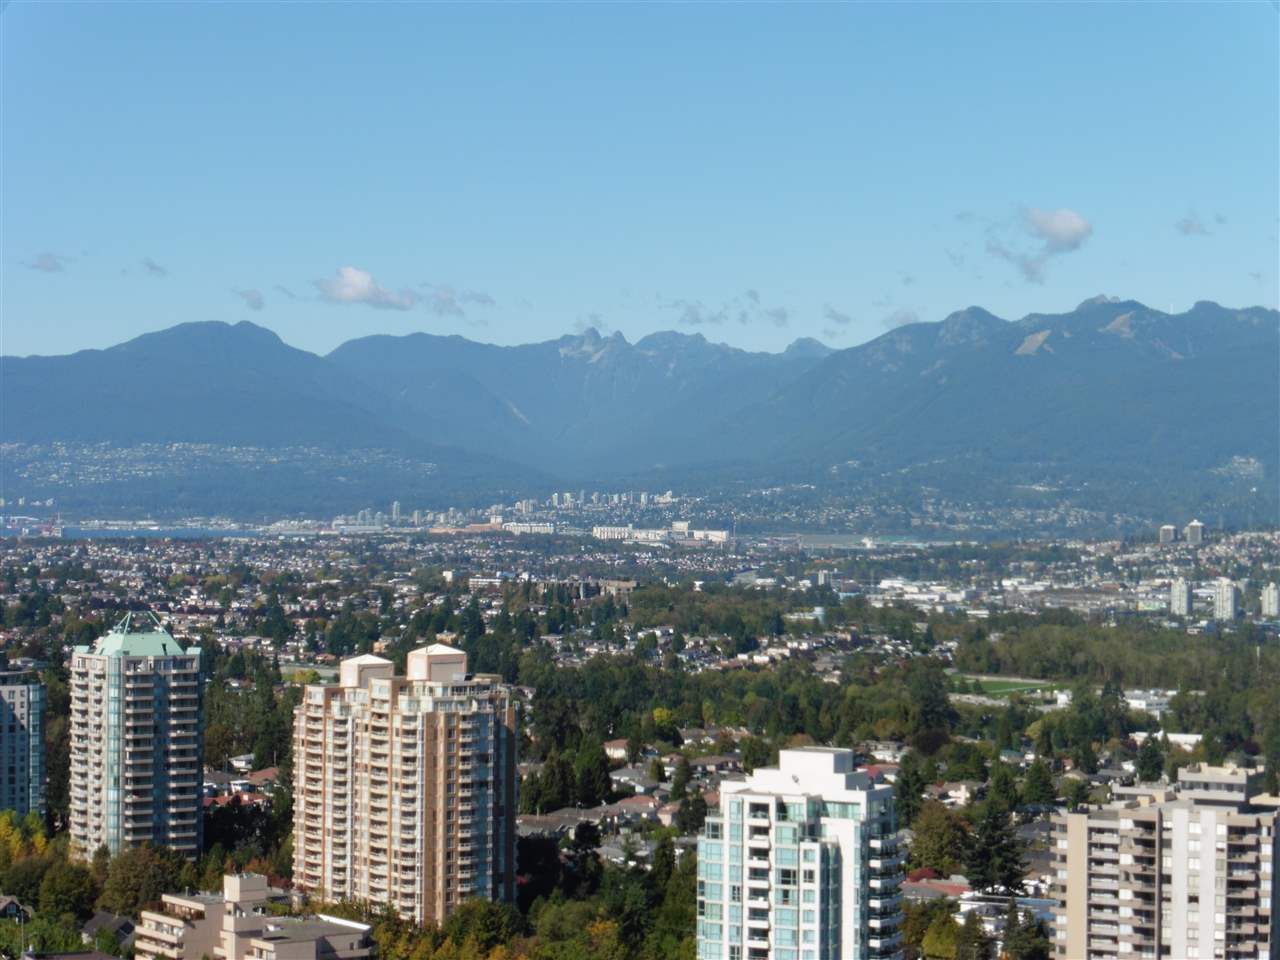 """Main Photo: 3702 4880 BENNETT Street in Burnaby: Metrotown Condo for sale in """"CHANCELLOR"""" (Burnaby South)  : MLS®# R2006395"""